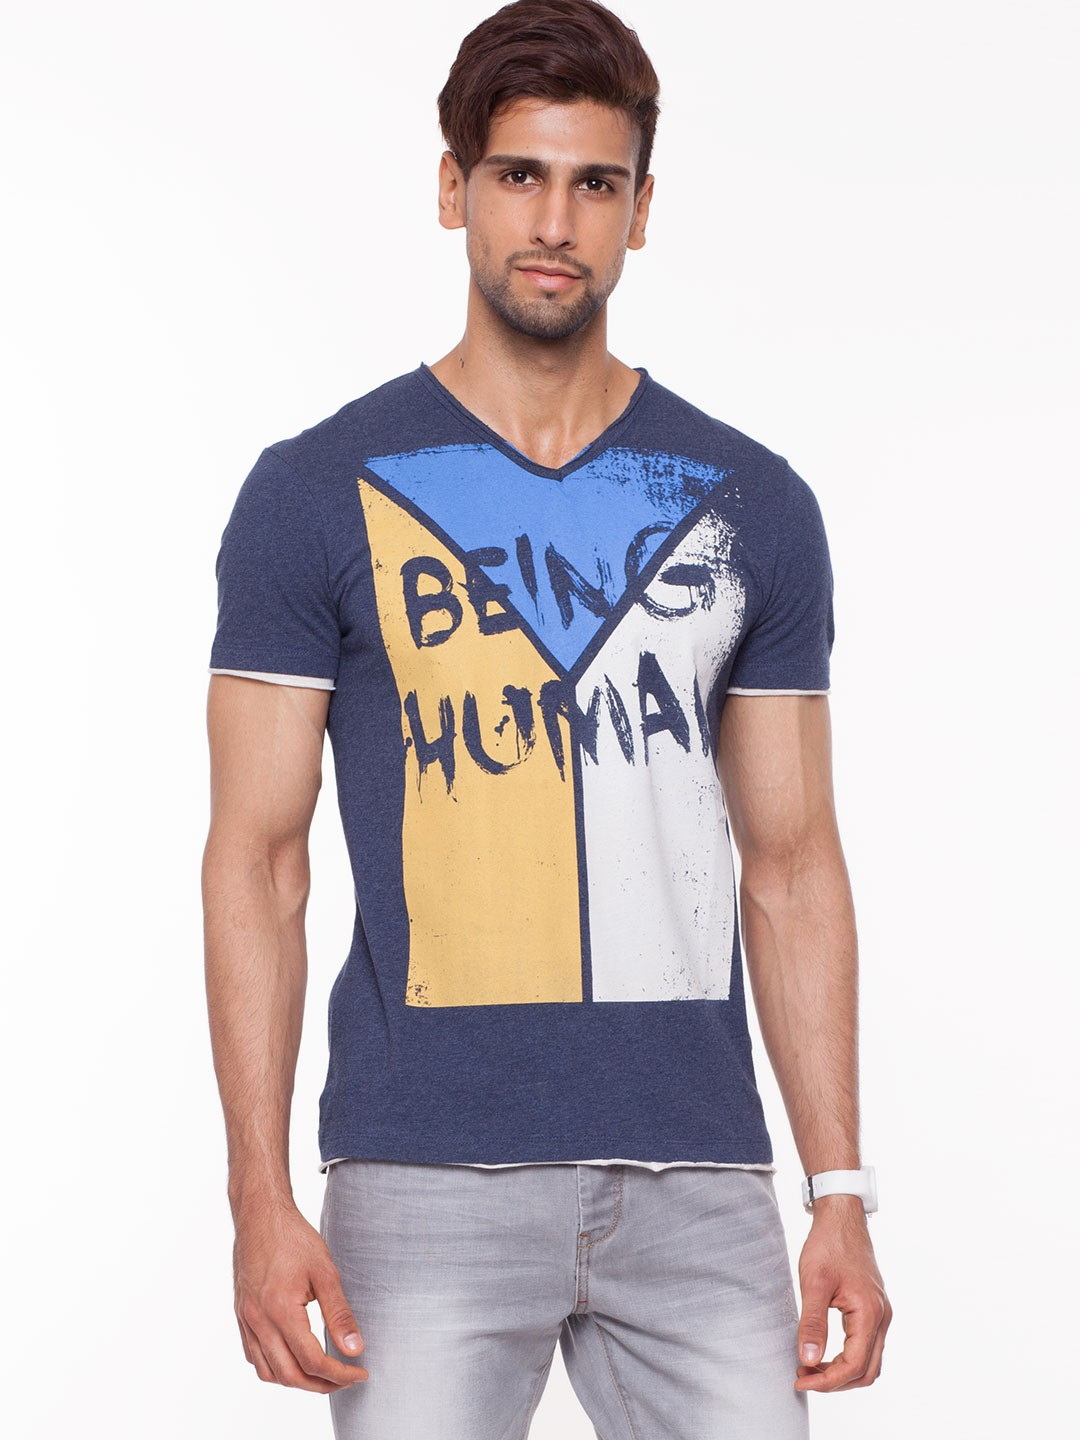 Buy being human colour block print t shirt for men men 39 s for Being human t shirts buy online india